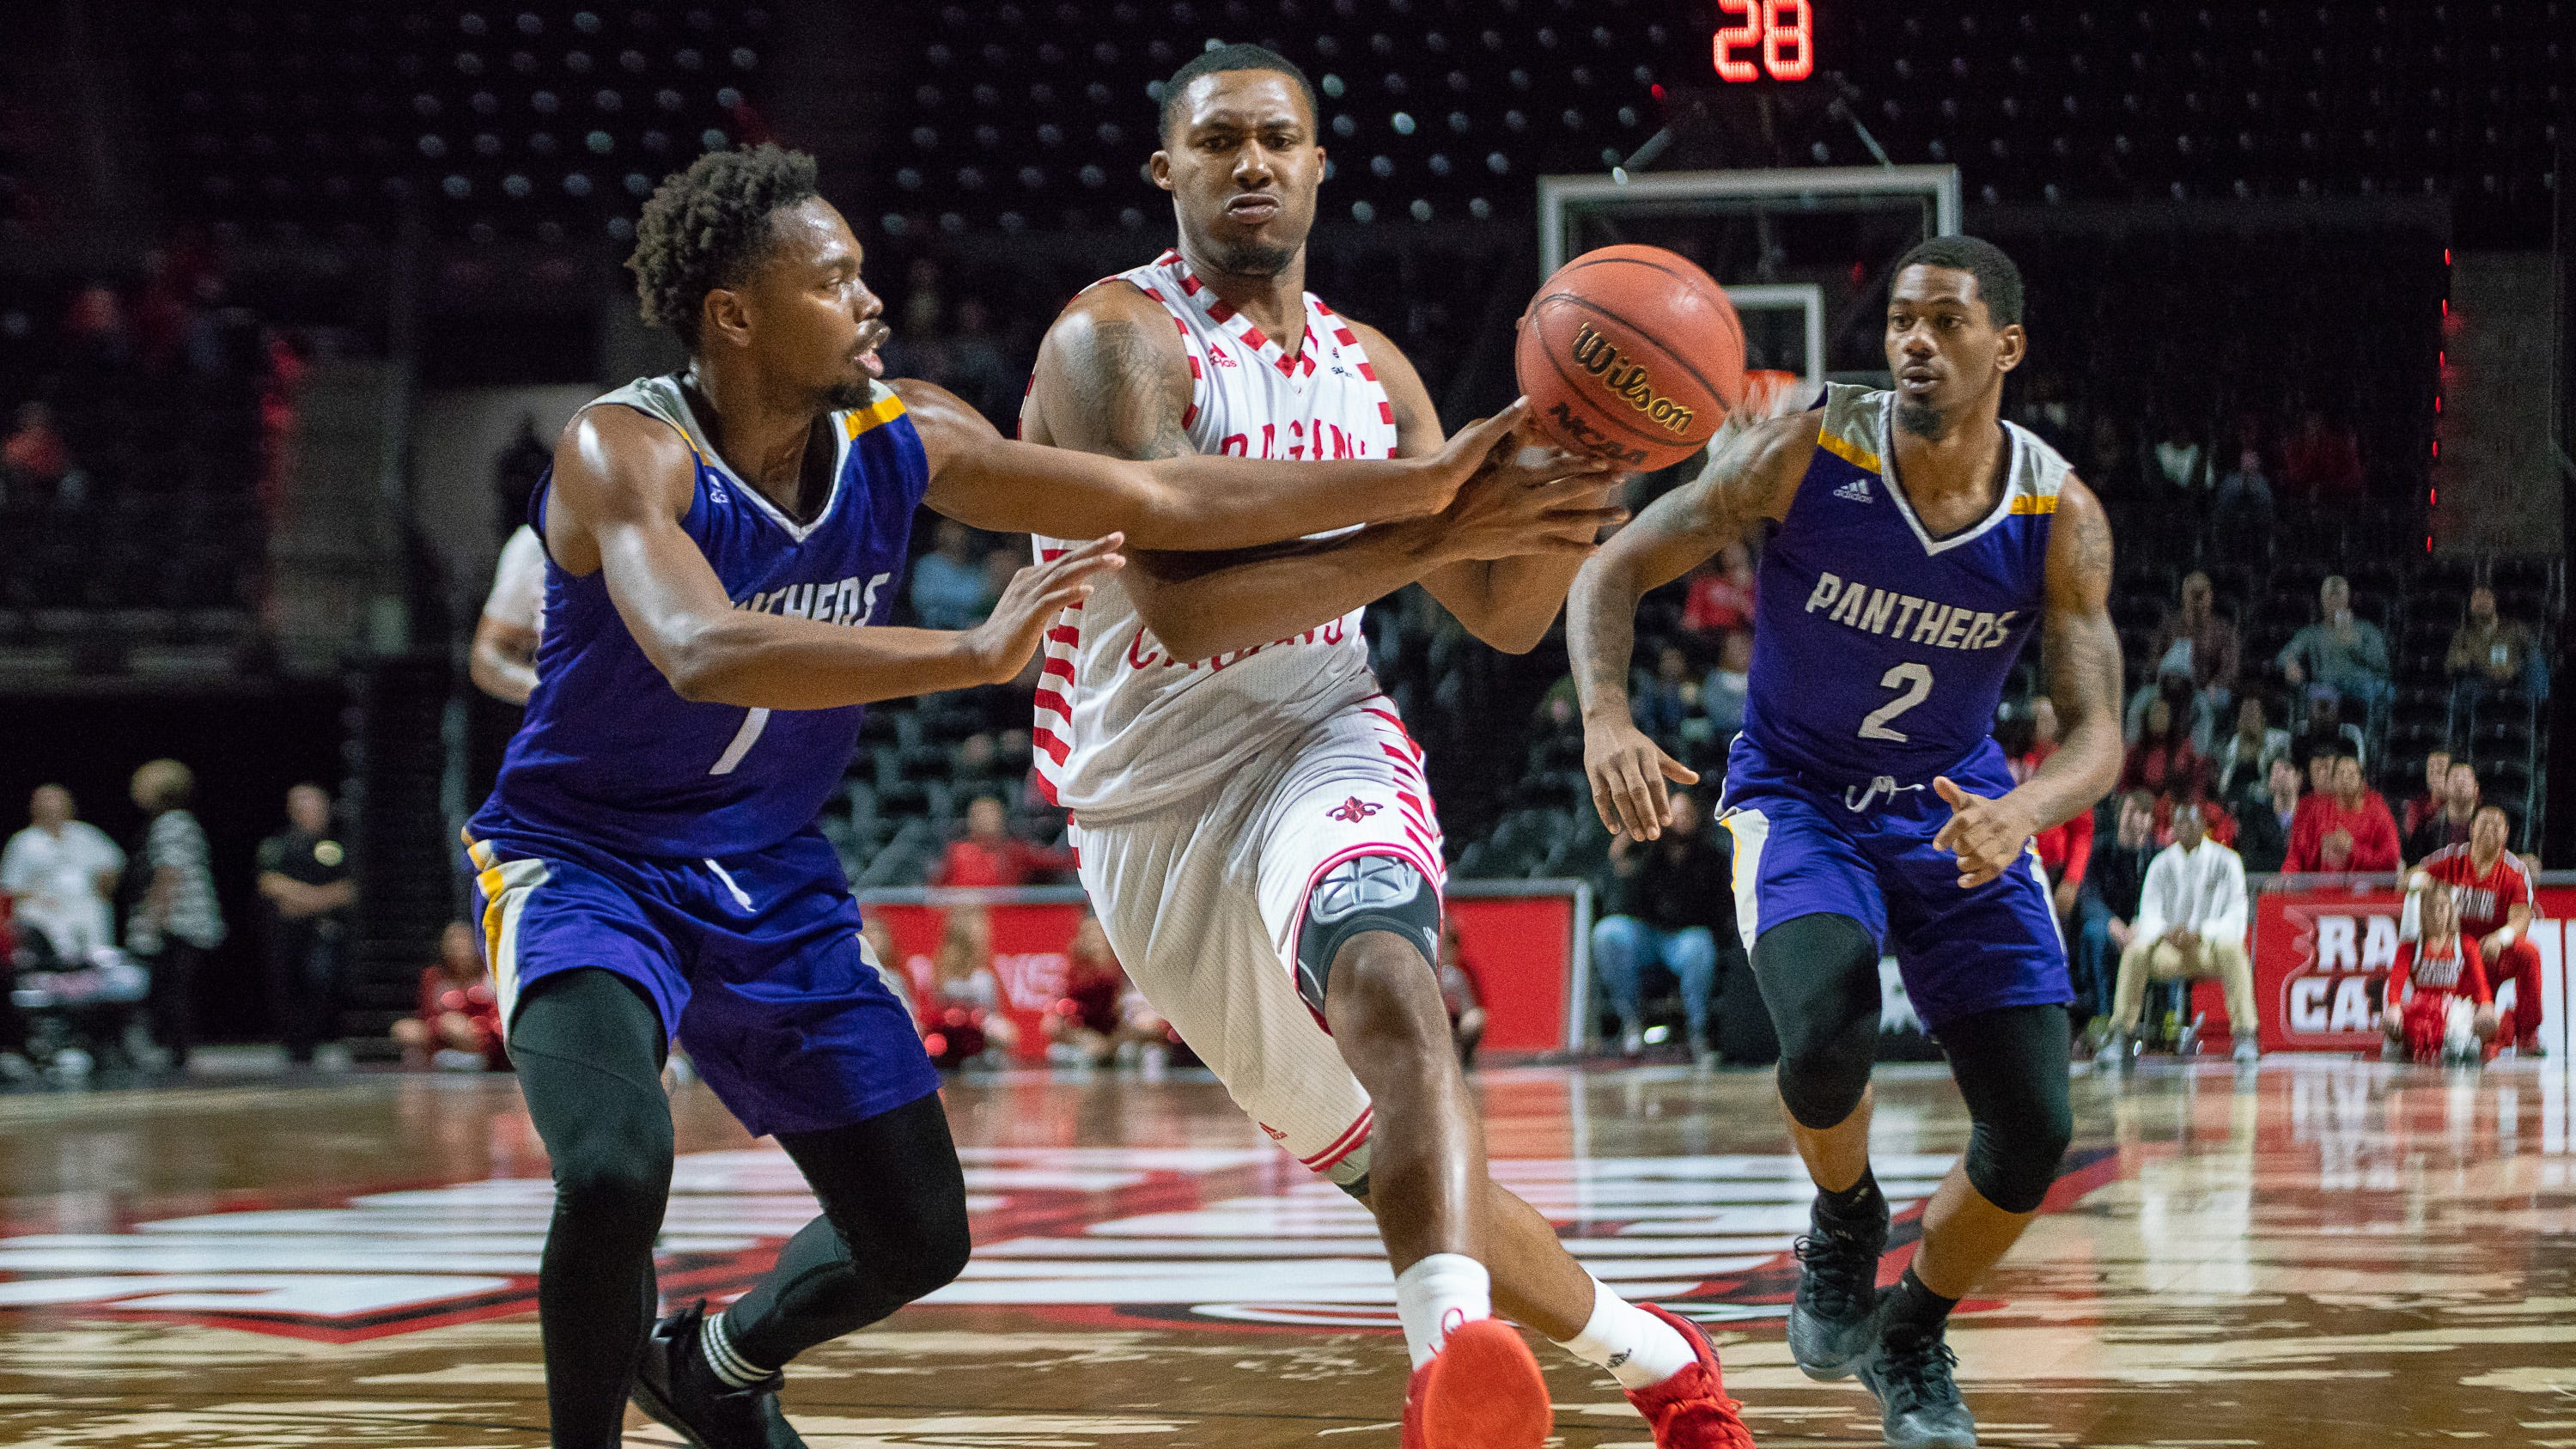 UL's Jerekius Davis makes a drive to the goal as the Ragin' Cajuns take on the Prairie View A&M Panthers at the Cajundome on December 11, 2018.